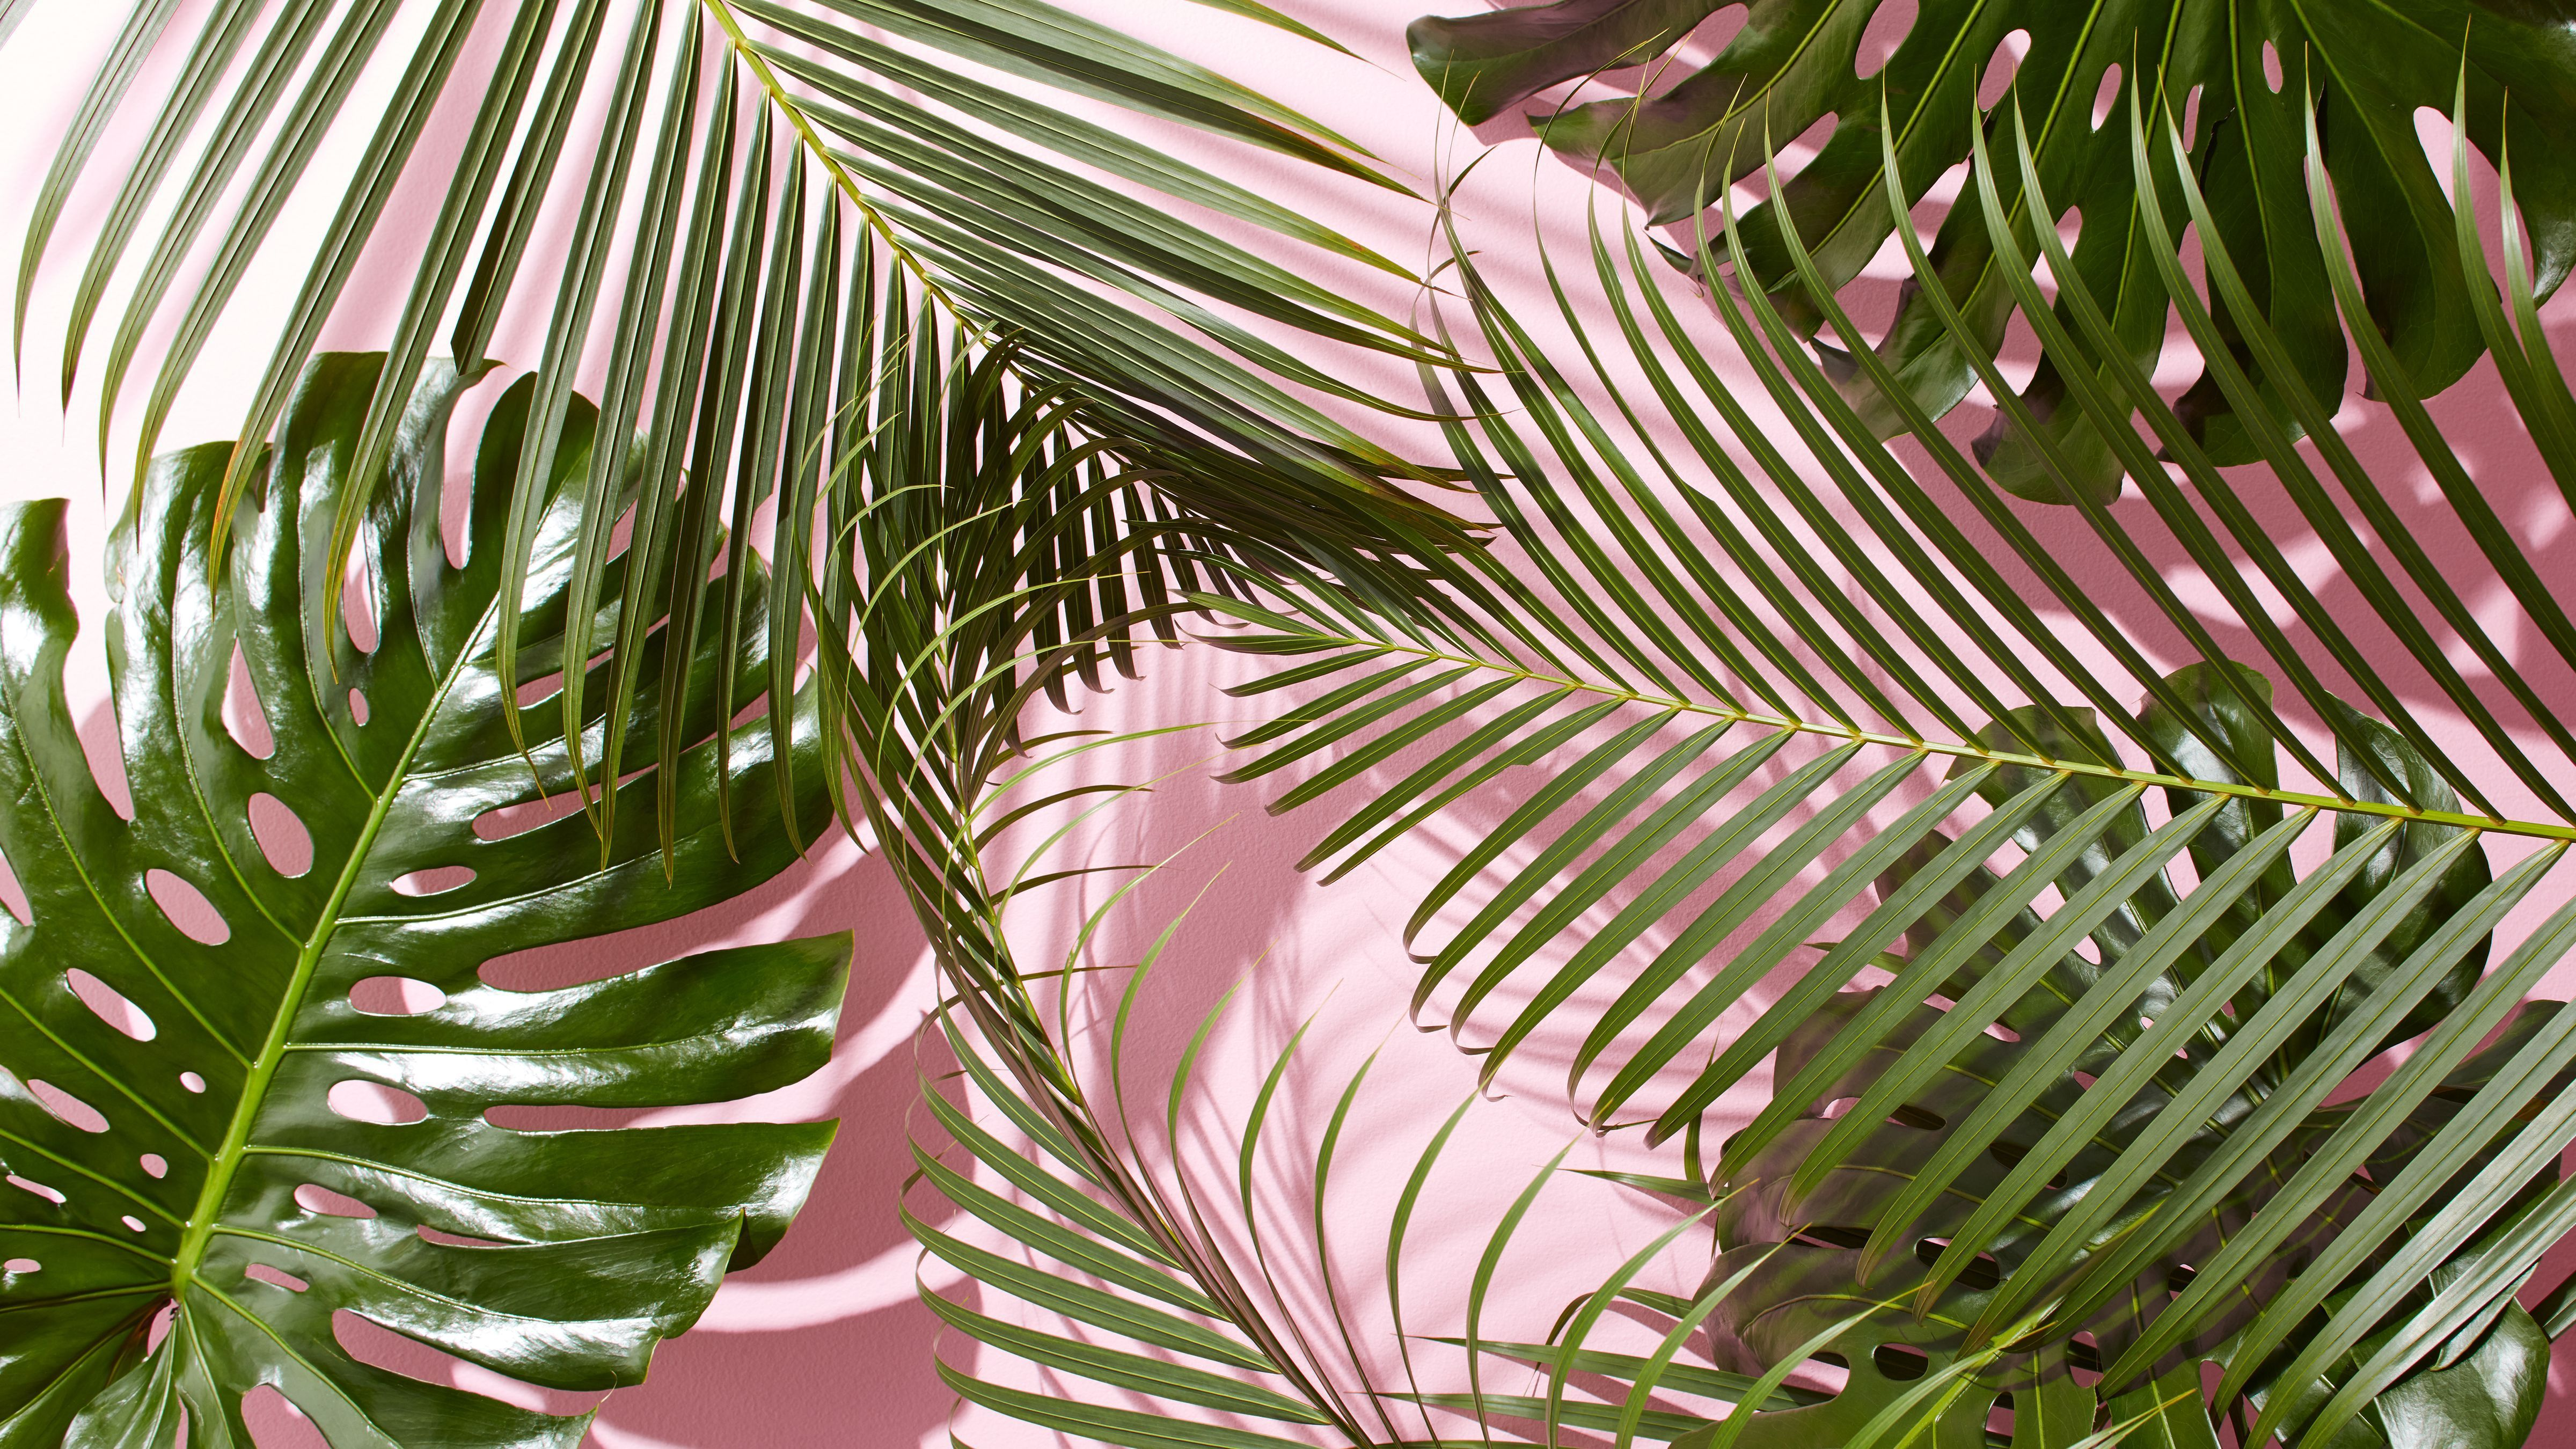 Aesthetic Tropical Leaves Desktop Wallpaper Choose from over a million free vectors, clipart graphics, vector art images, design templates, and illustrations created by artists worldwide! aesthetic tropical leaves desktop wallpaper